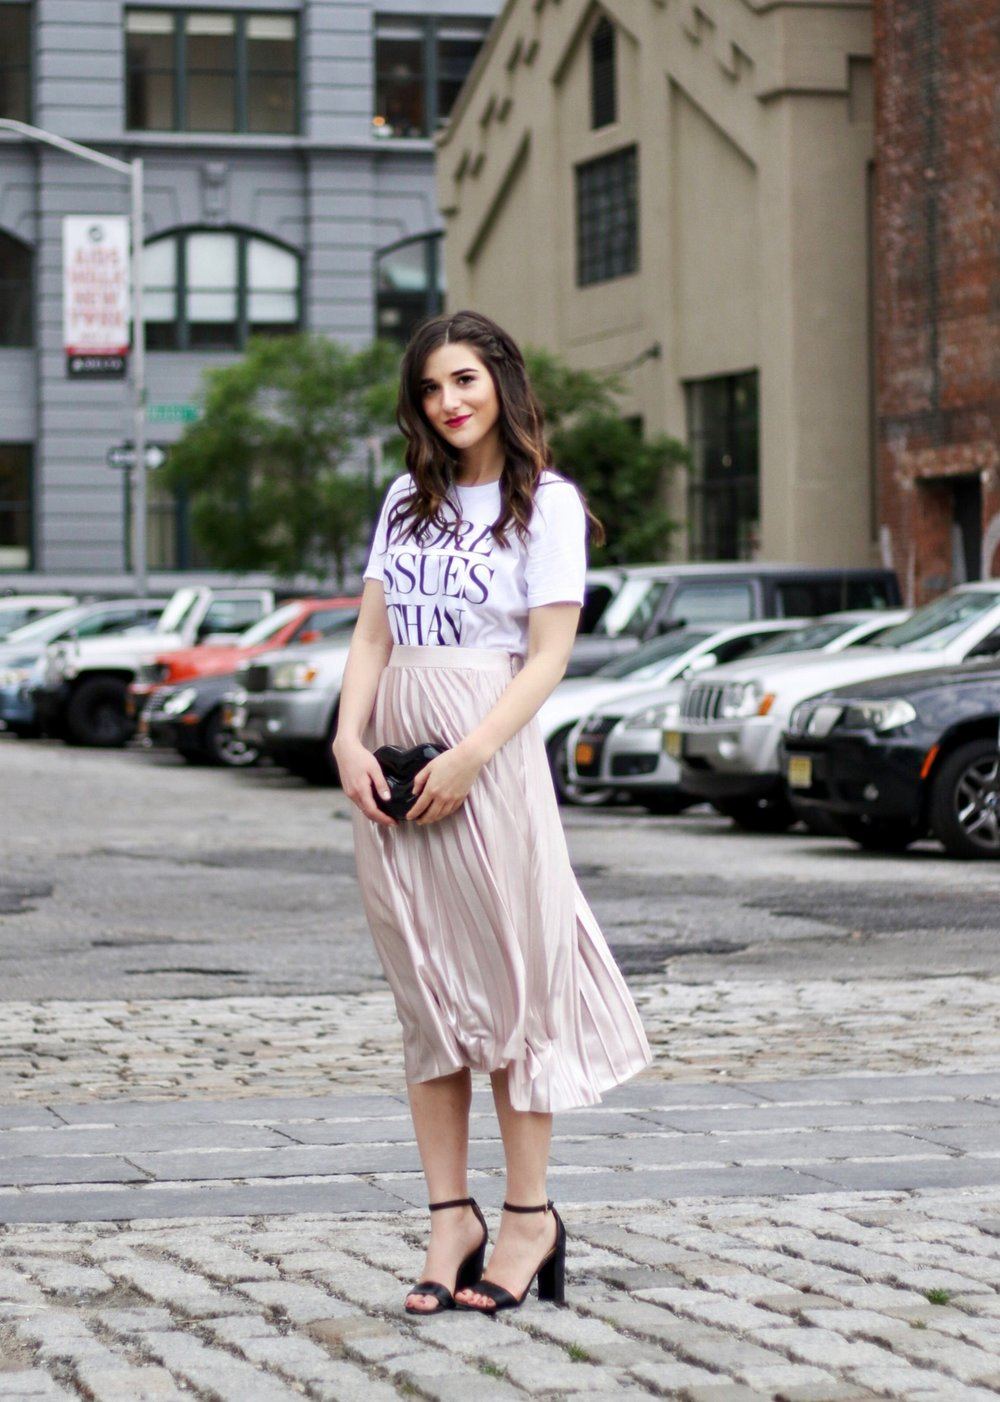 Metallic Midi Skirt + Graphic Tee 5 Mistakes Brands Make When Pitching Influencers Esther Santer Fashion Blog NYC Street Style Blogger Outfit OOTD Trendy Rachel Roy Shopping Girl Women Tshirt Shoes Heels Ivanka Trump Black Lips  Bag Clutch Pretty Cute.JPG